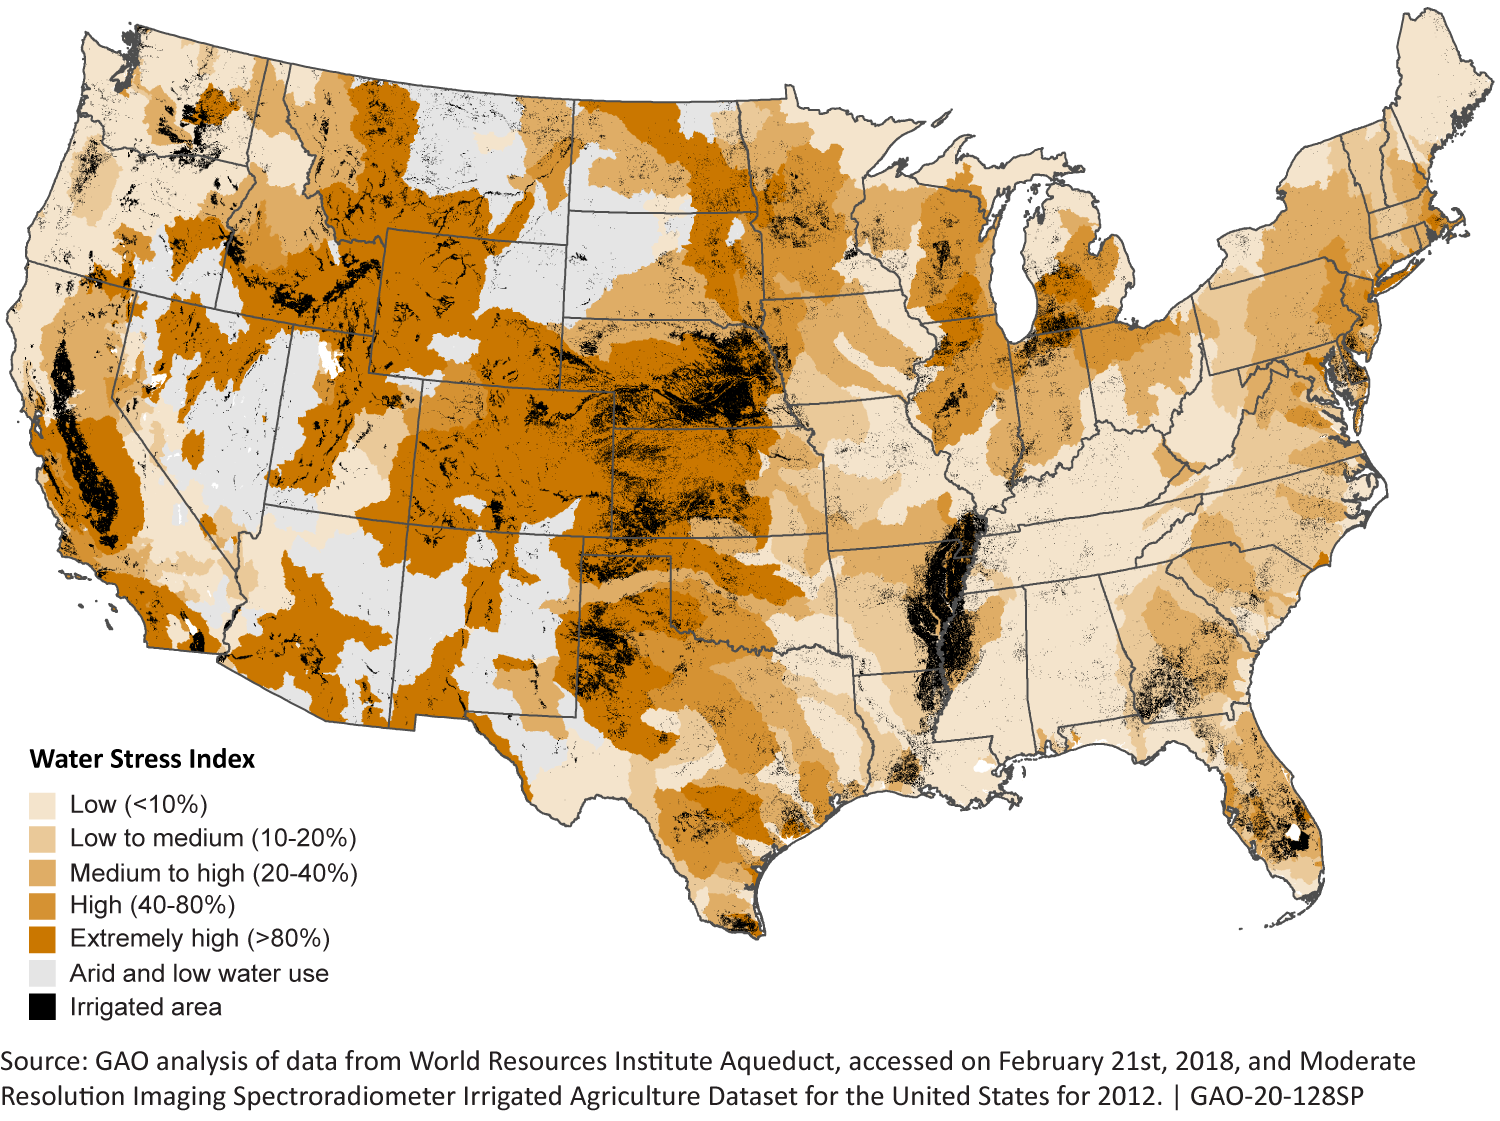 A map of the continental United States showing water stress and irrigation well locations.